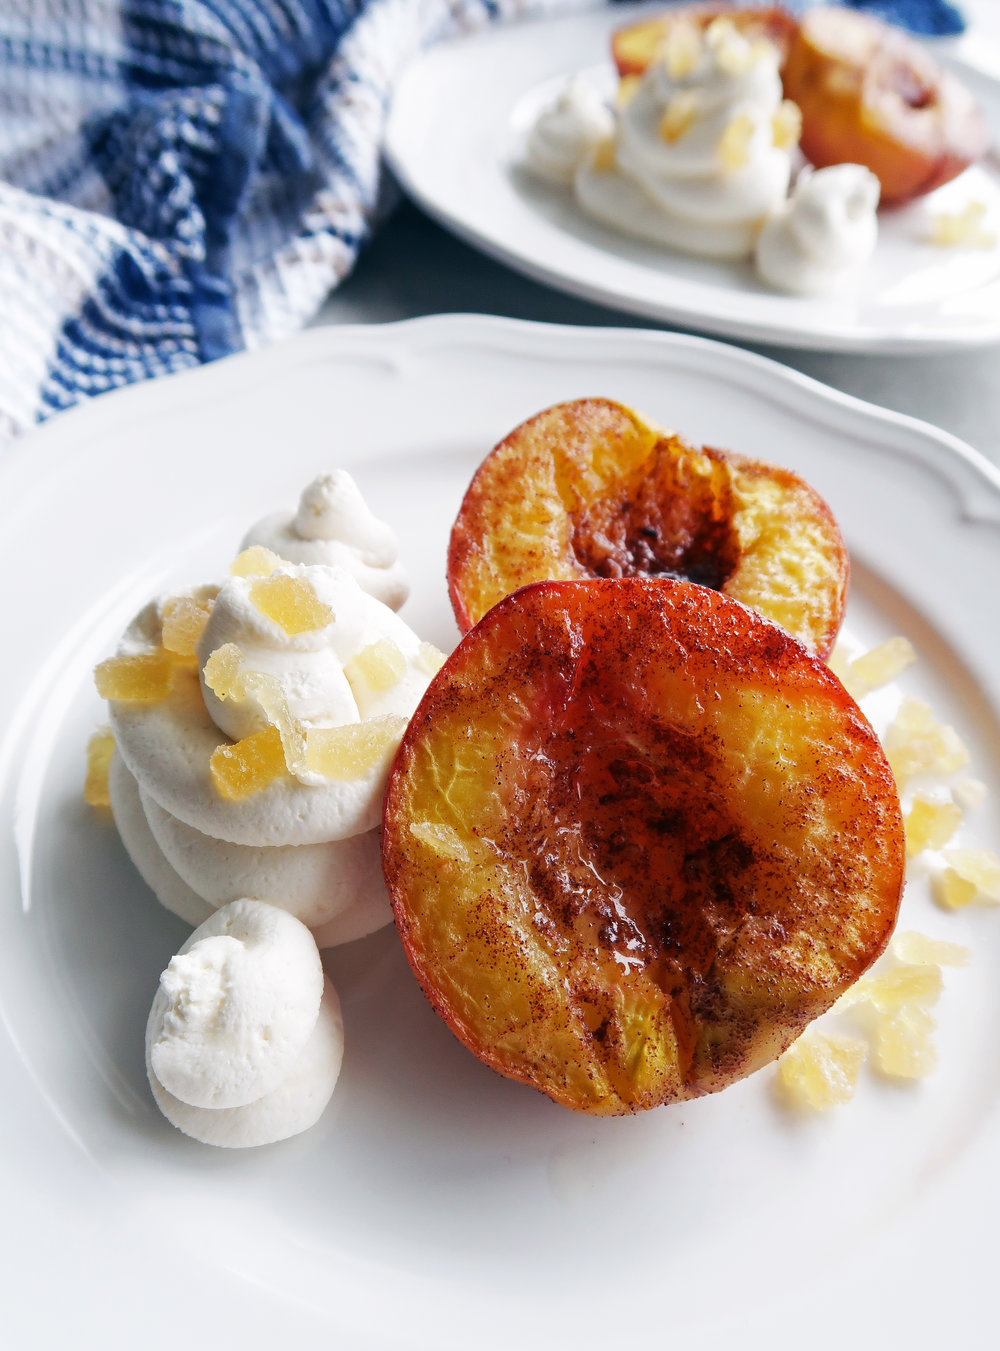 Cinnamon Roasted Peaches with Honey Marscarpone Whipped Cream: A simple and easy dessert that's vegetarian and gluten-free! www.yayforfood.com